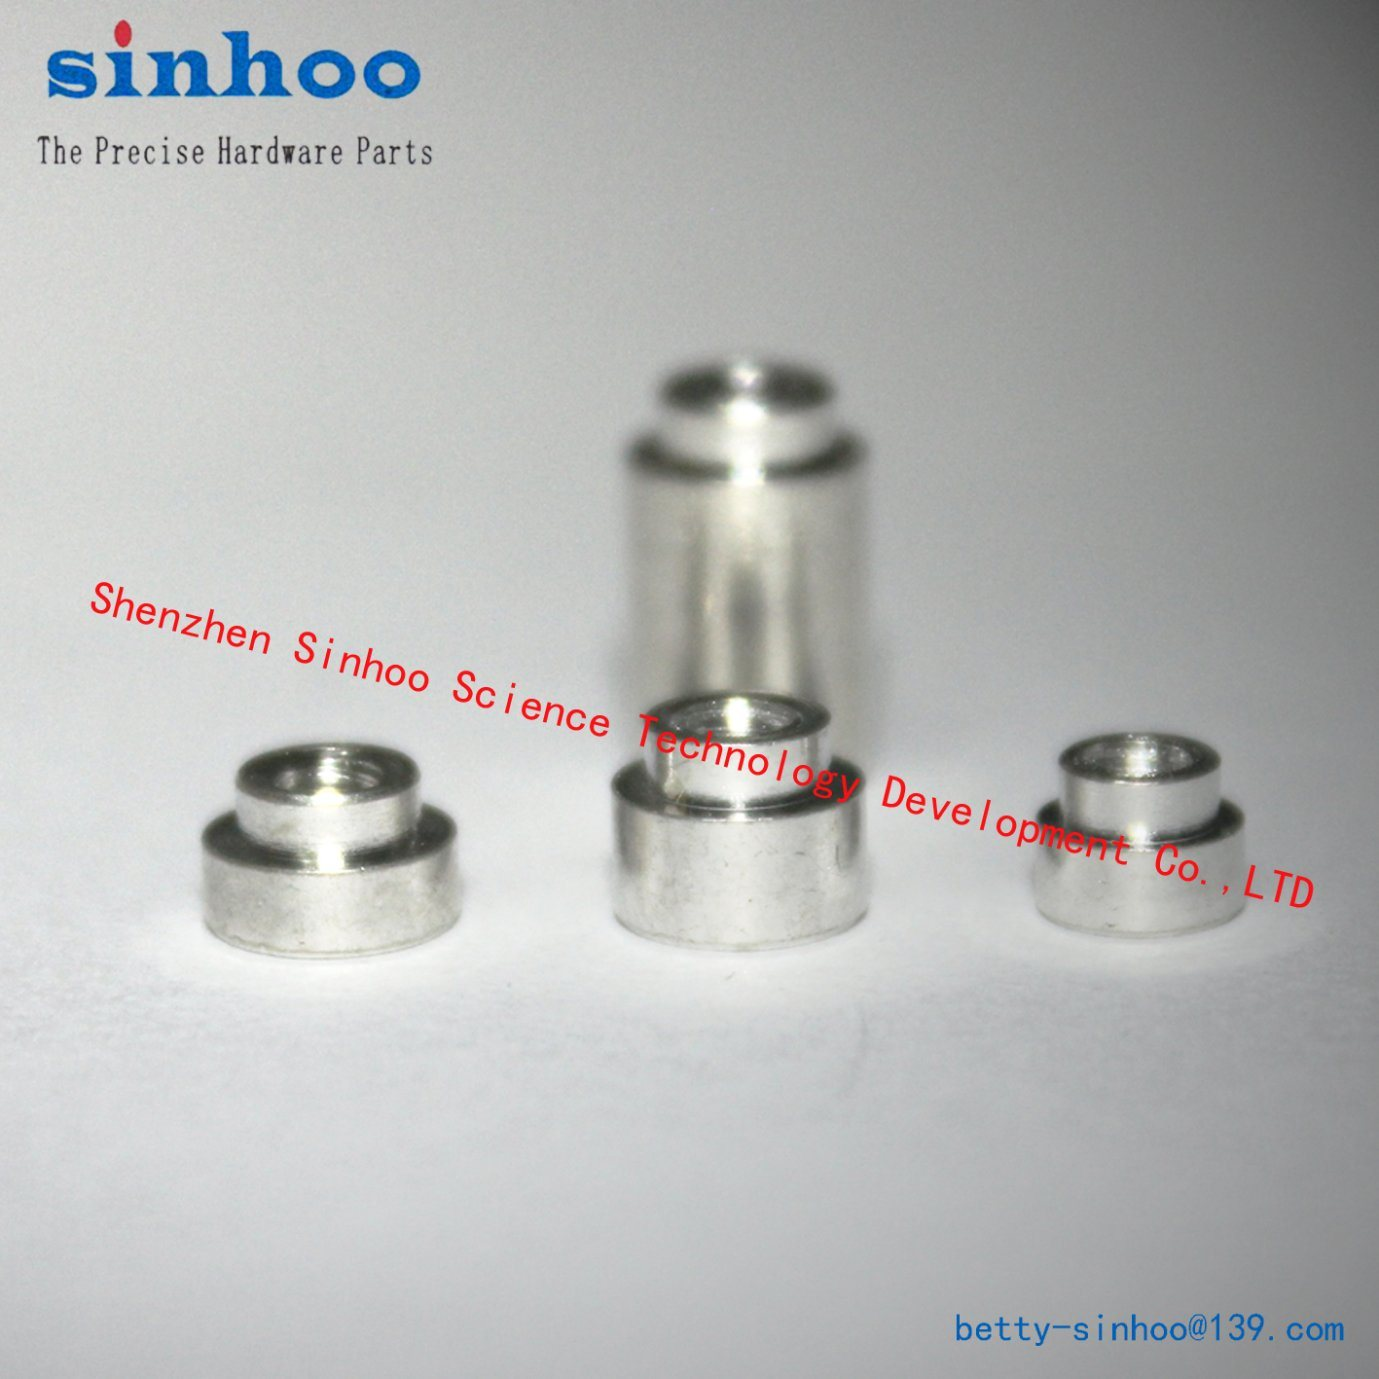 Smtso-M2.5-1.5et Weld Nut / PCB Nut / Reel Package, Manufacturers, Stock, Brass Bulk